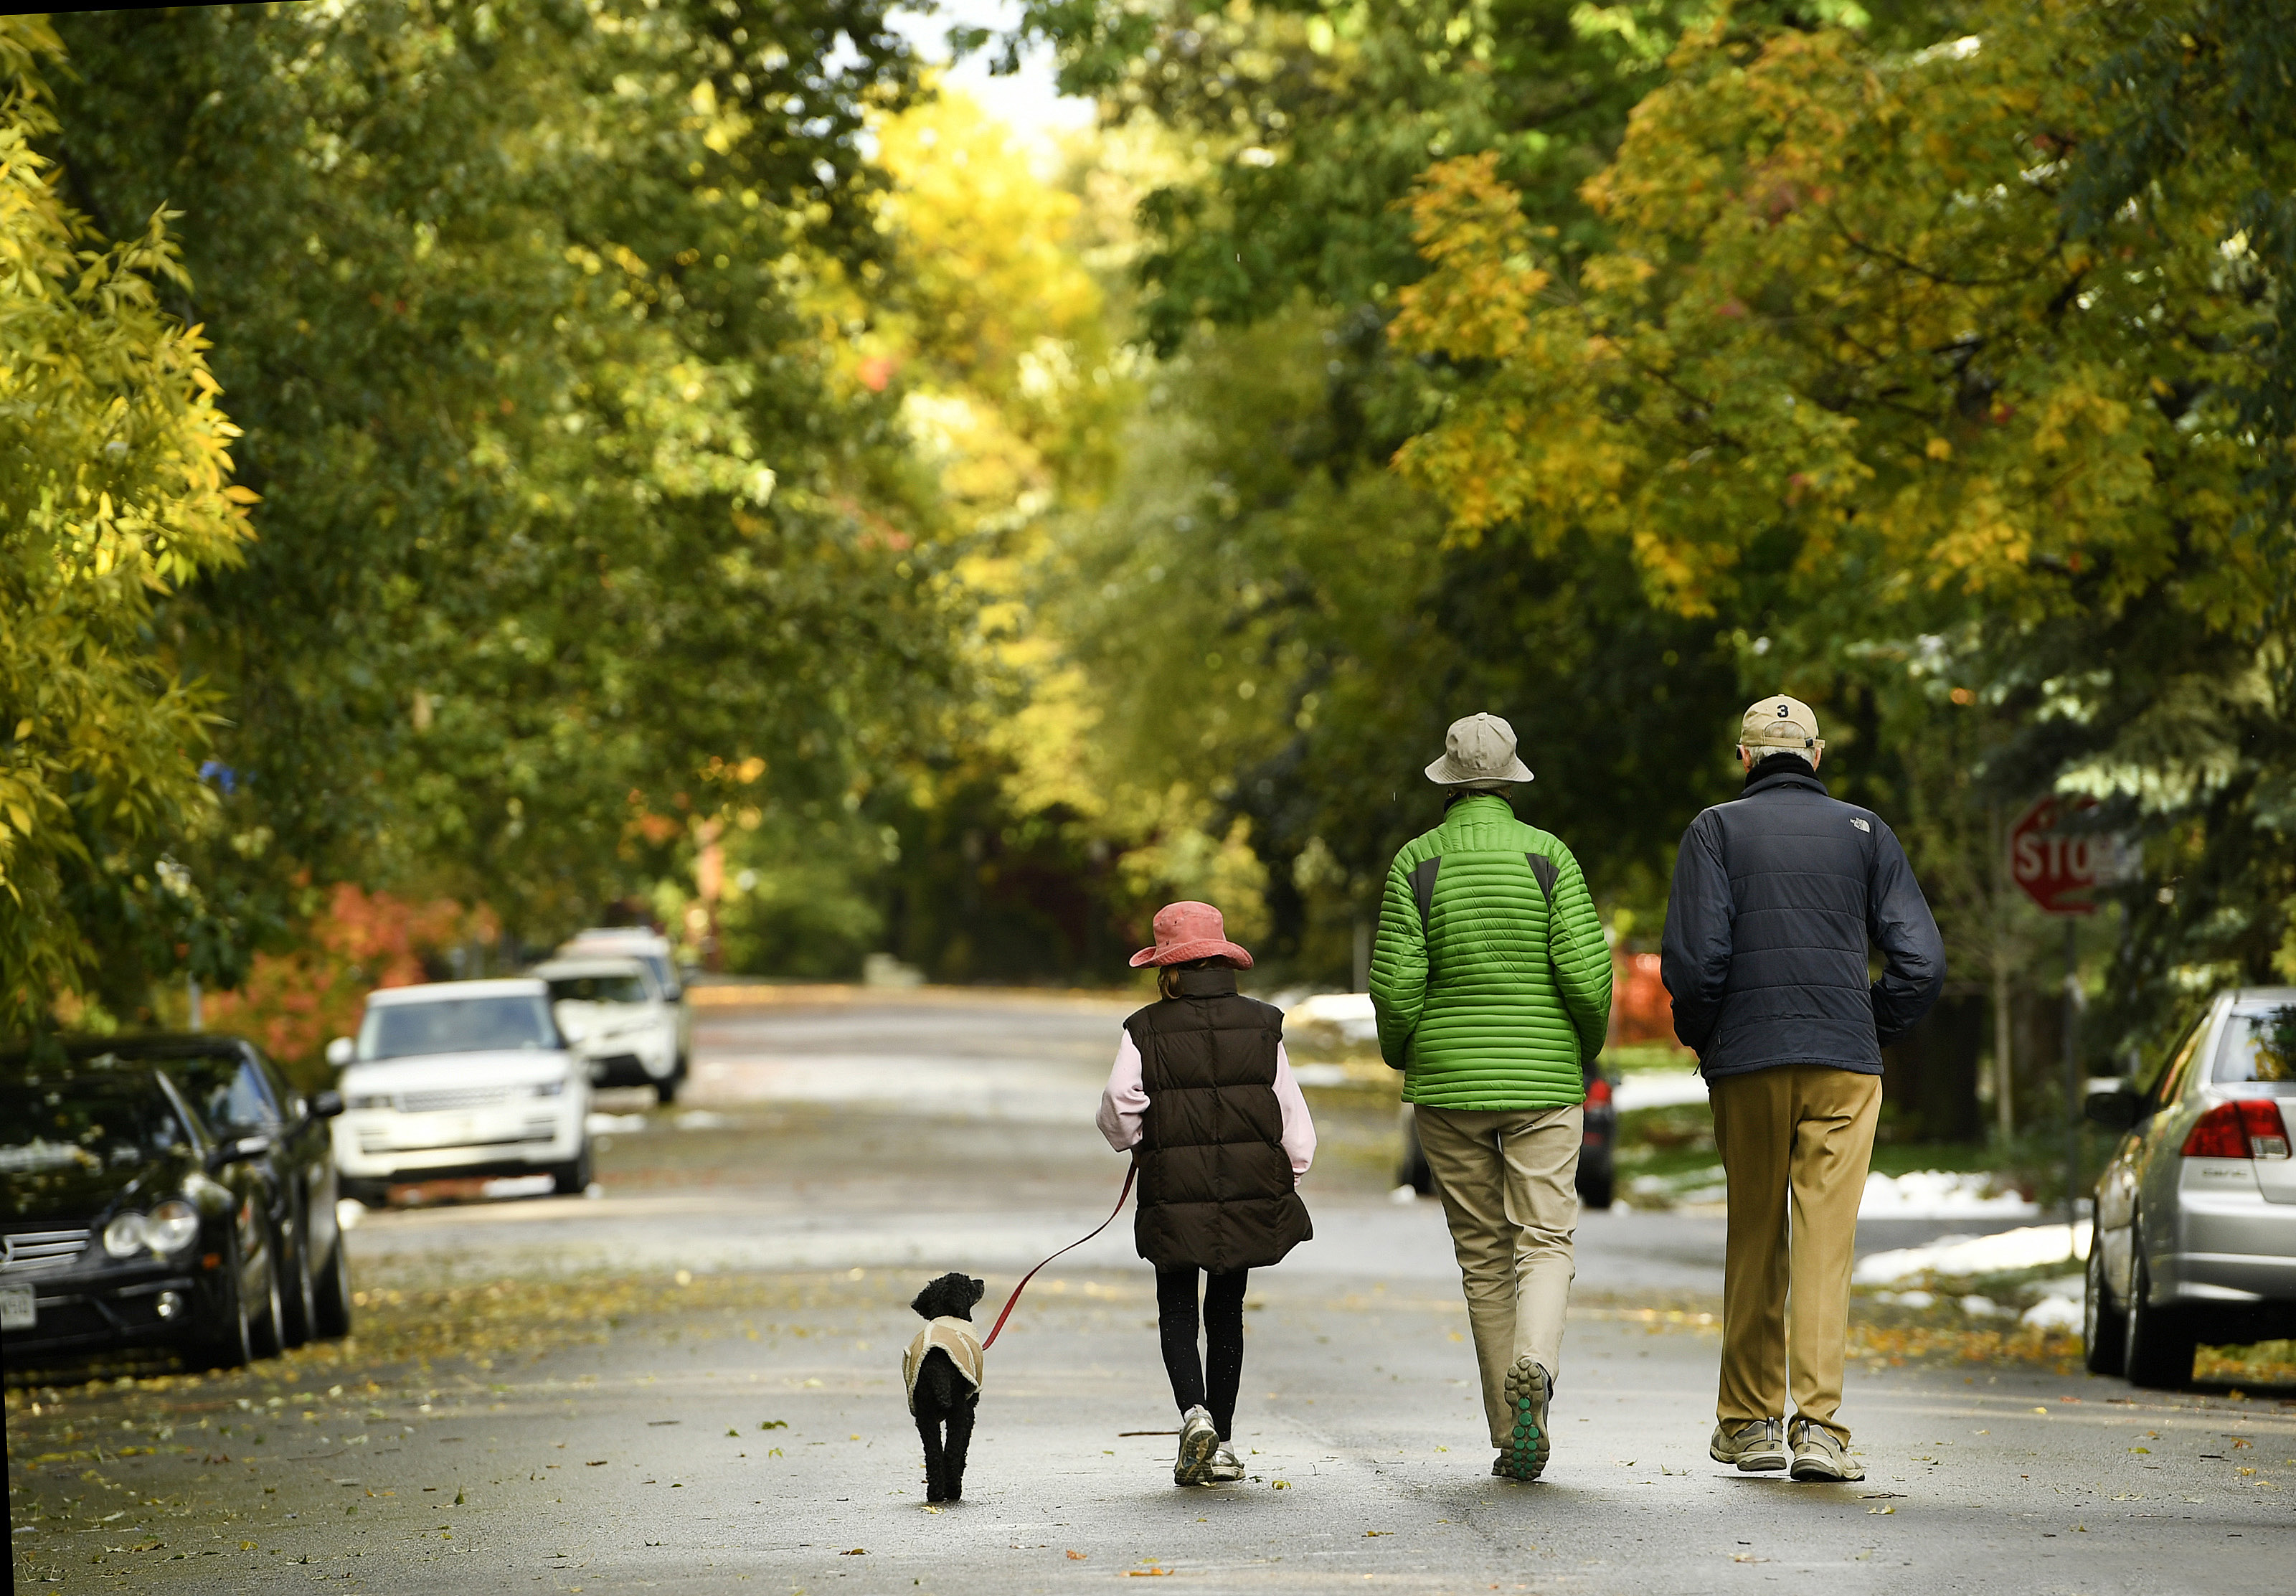 Celeste Bizzarro-Parkin, 8, left, walks with her grand aunt Anne Guthrie, grand uncle Tom Woodard, right, and her dog Nollie as they enjoy a cool afternoon walk under colorful trees on Mapleton Hill on a wintery fall day on October 9, 2017 in Boulder, Colo.